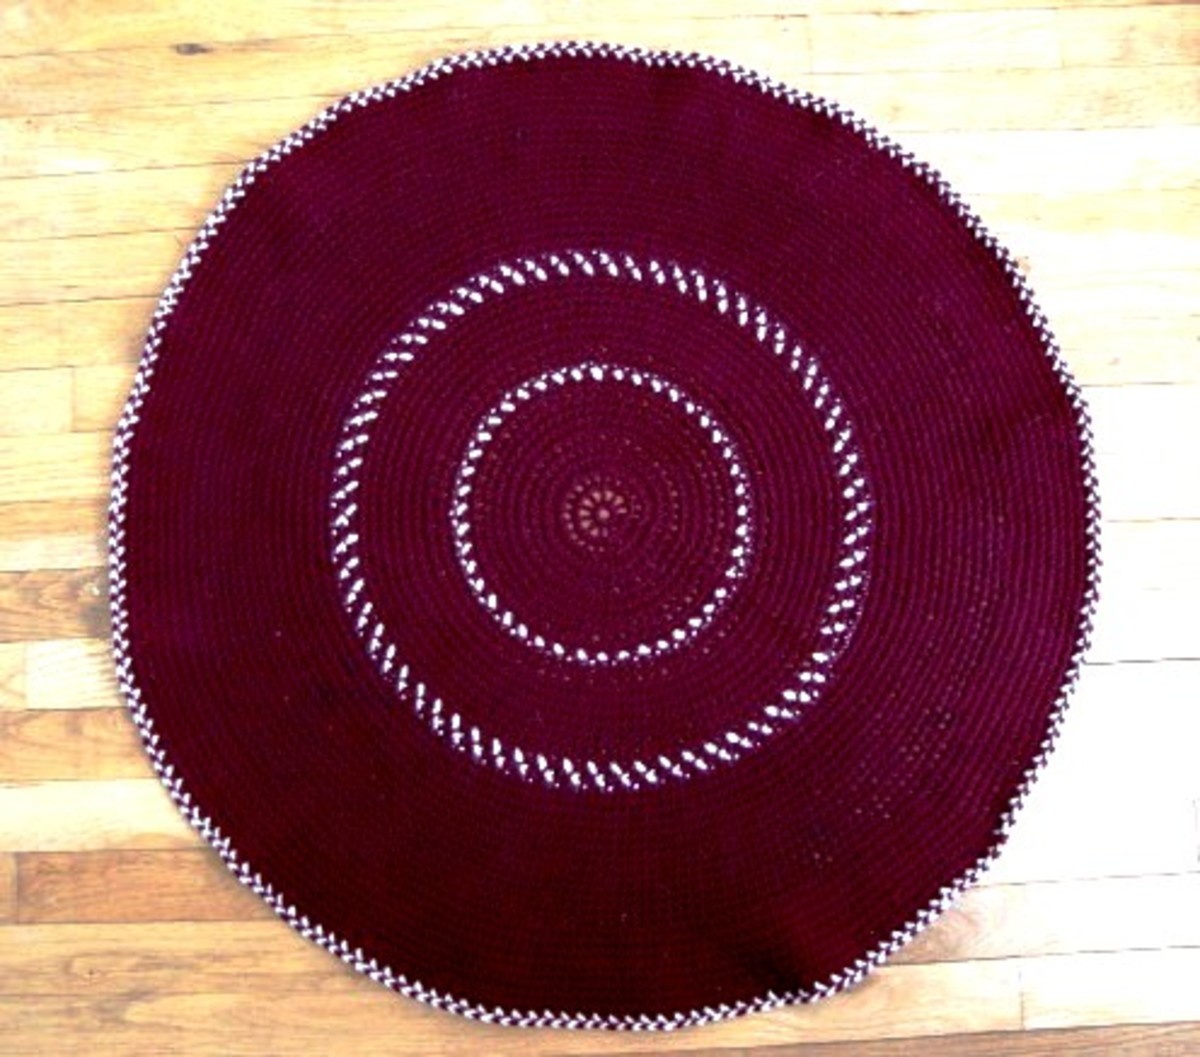 Crocheting a Round Rug in Maroon and Cream-Colored Yarn